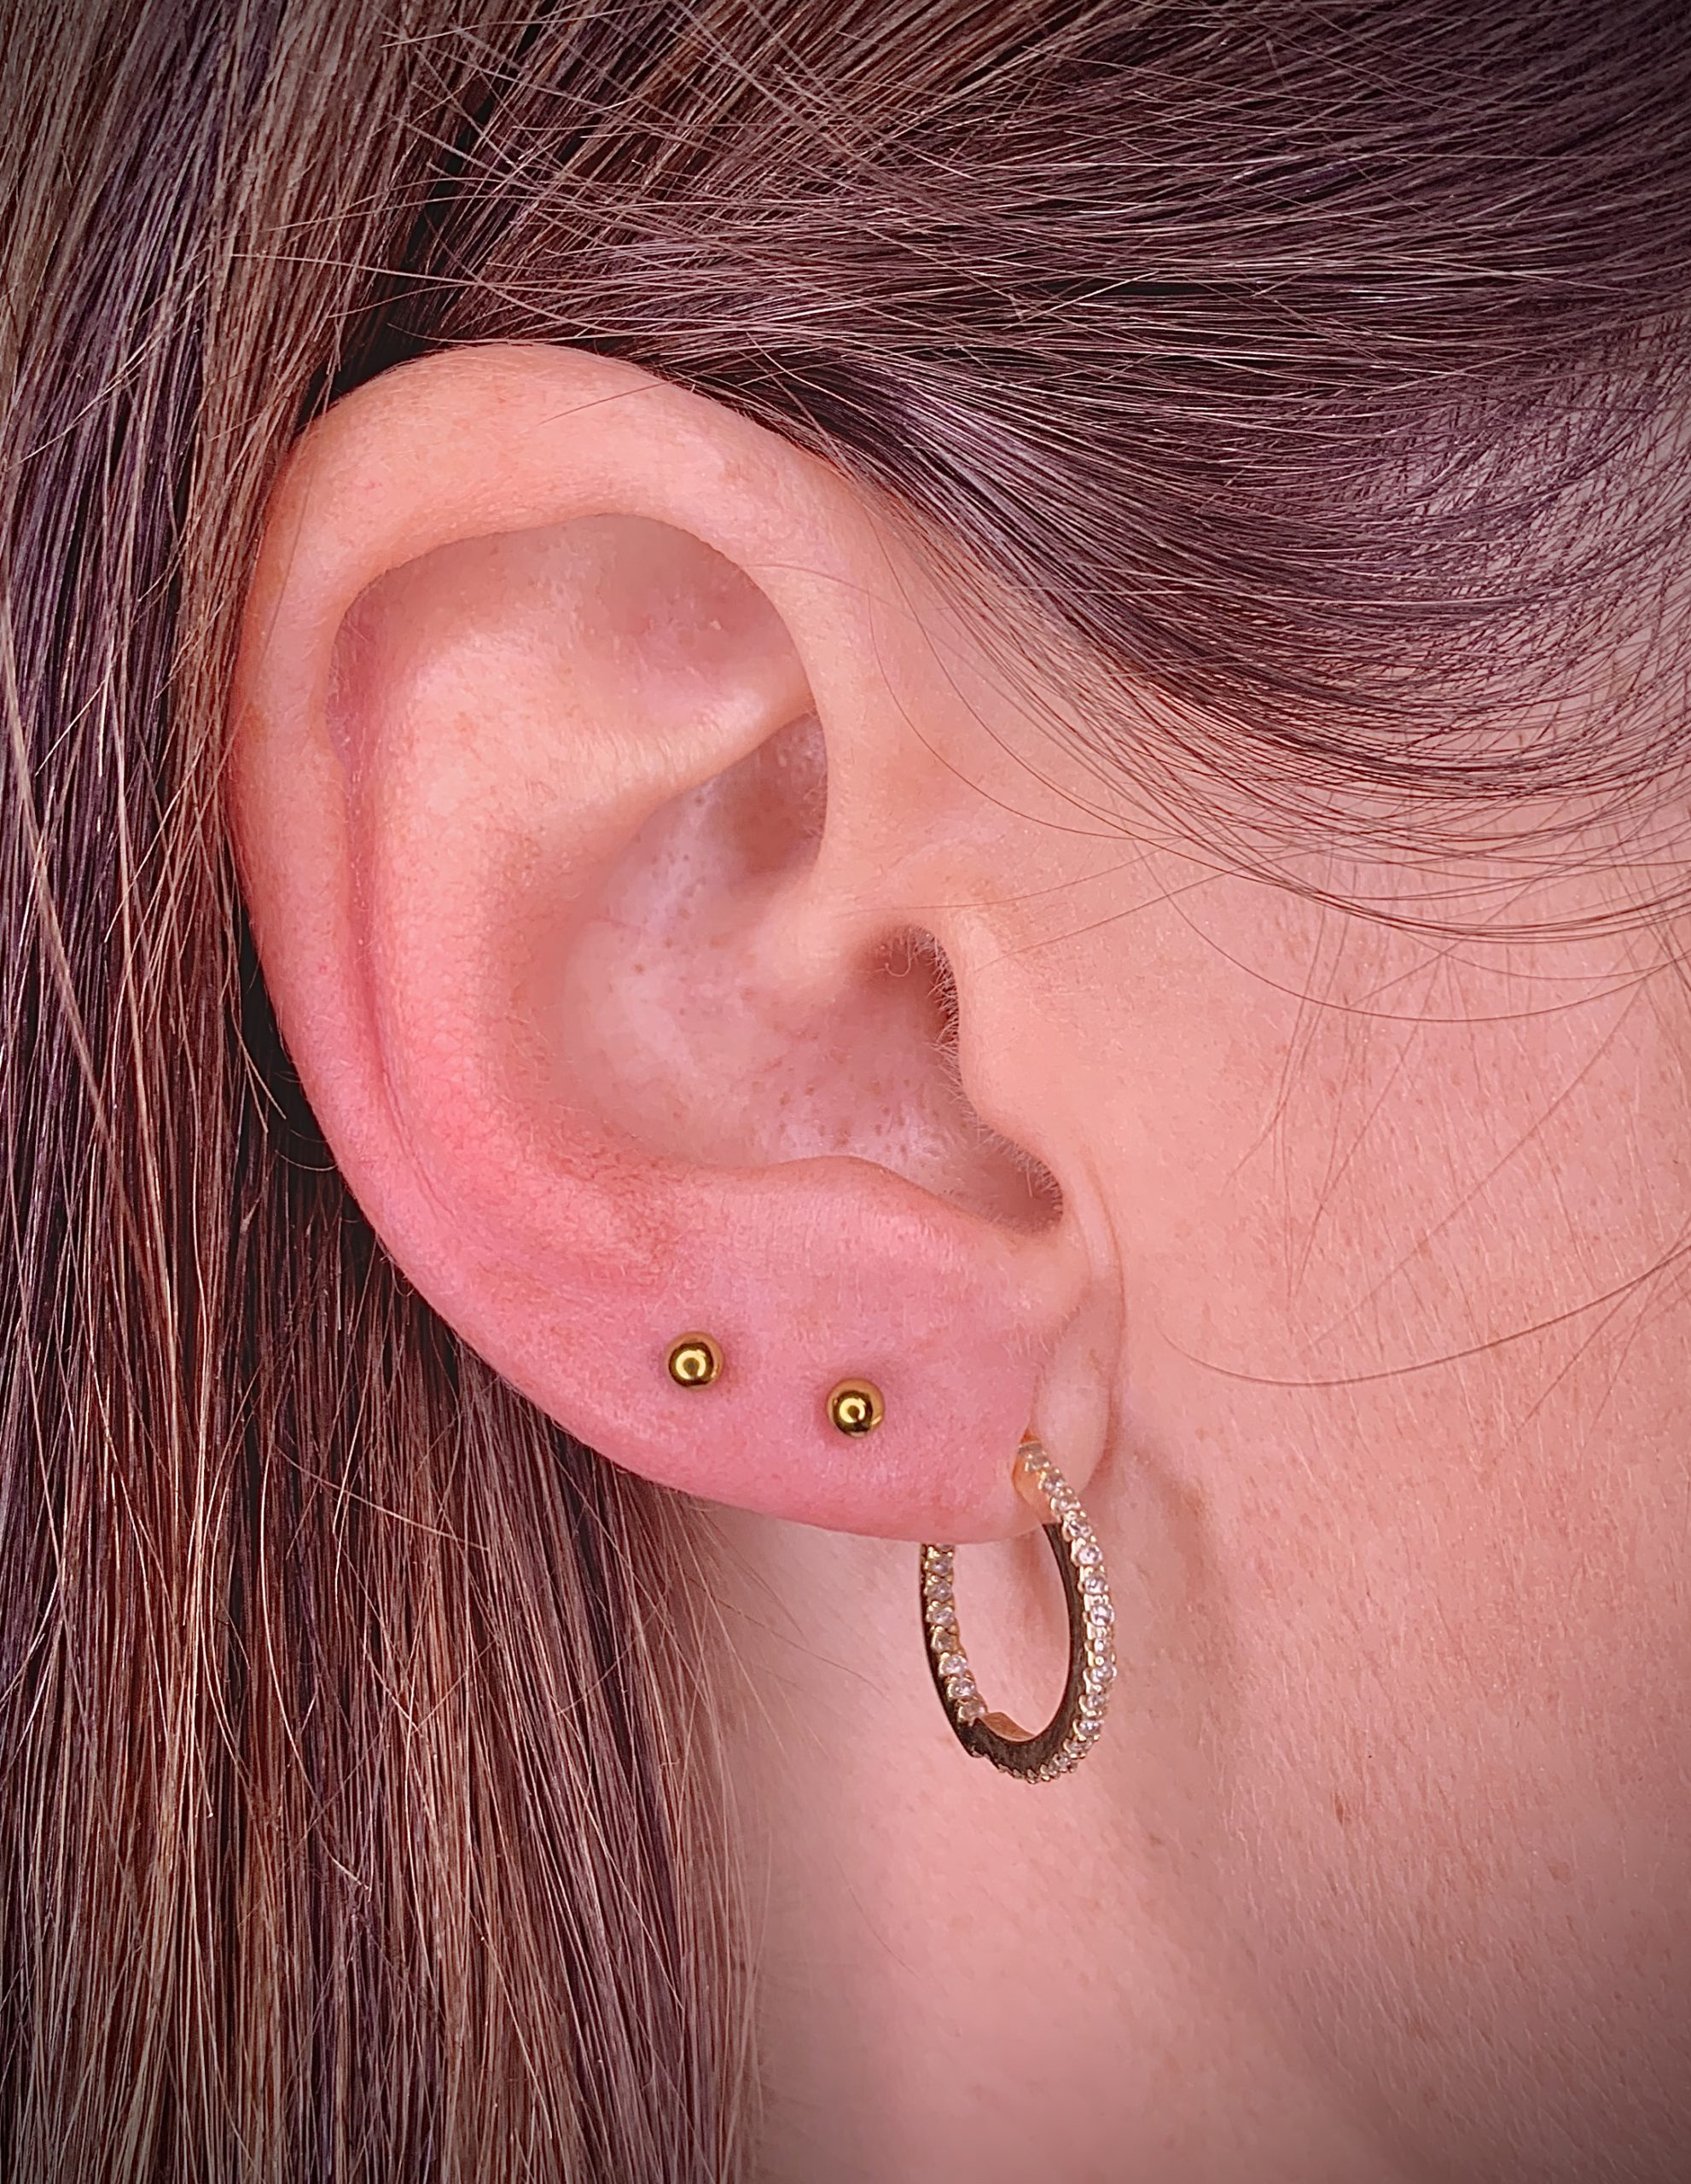 Ear Piercing two upper lobes with a titanium jewelry anodized in gold color. Piercing Barcelona